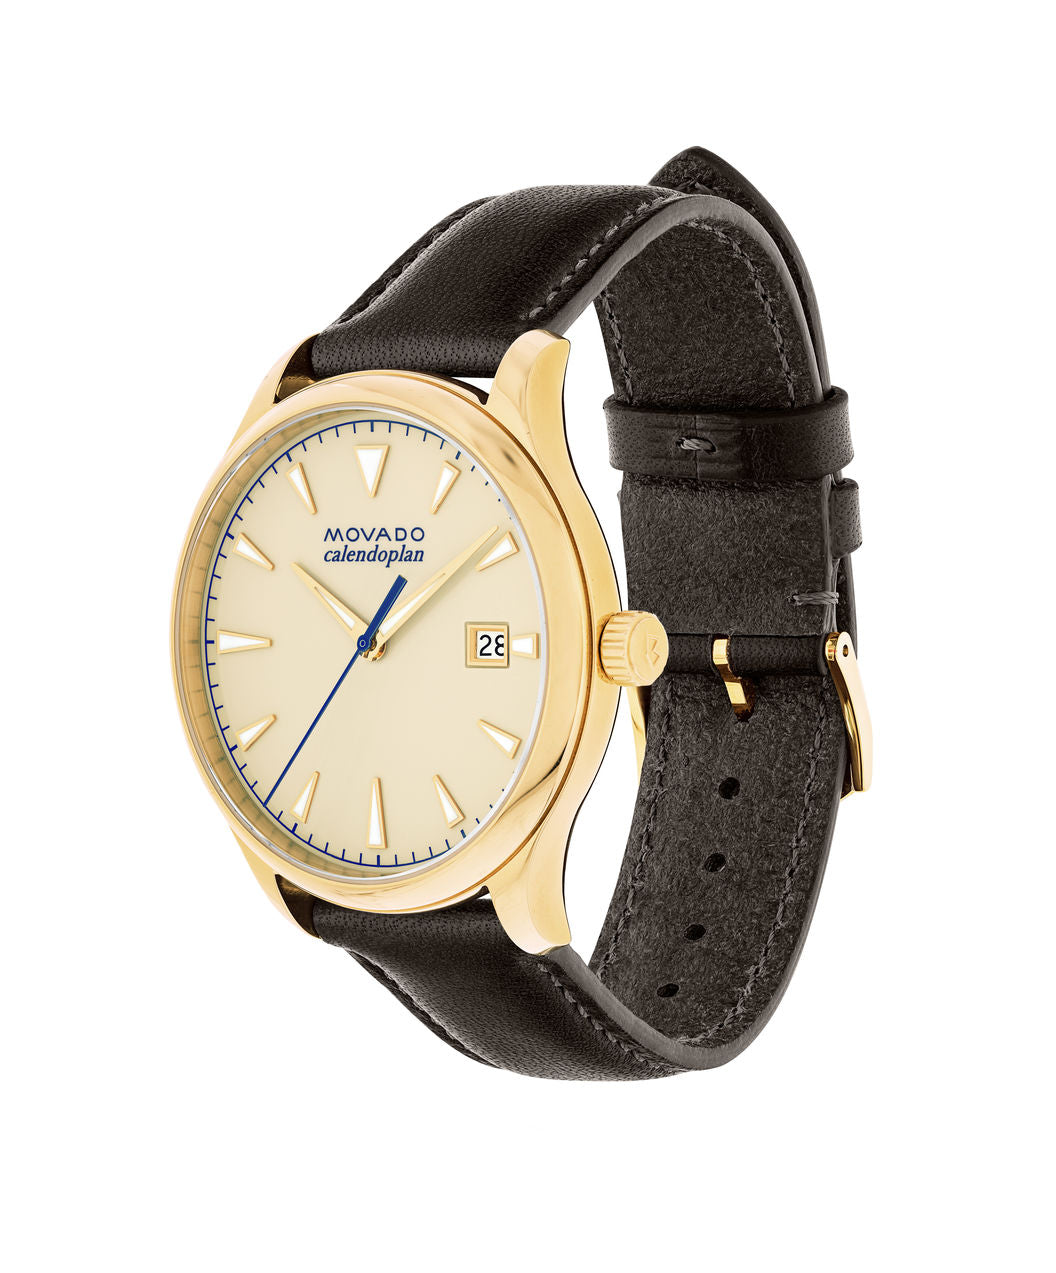 Movado Watch Heritage Series - Calendoplan Gold Tone